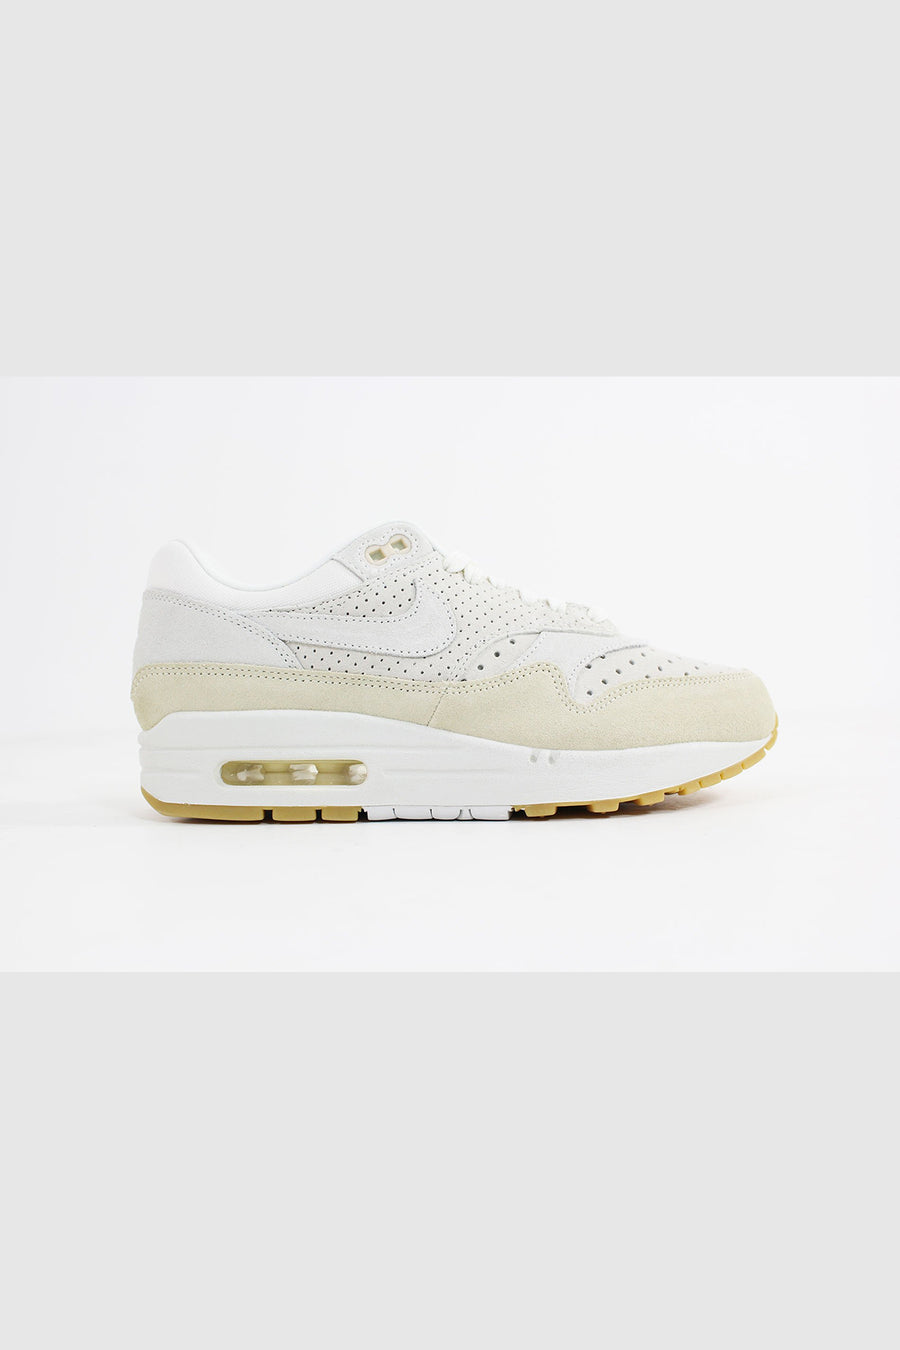 Nike - Air Max 1 Premium Frauen (Segel / Segel-Fossil-Gum Light Brown) 454746-110